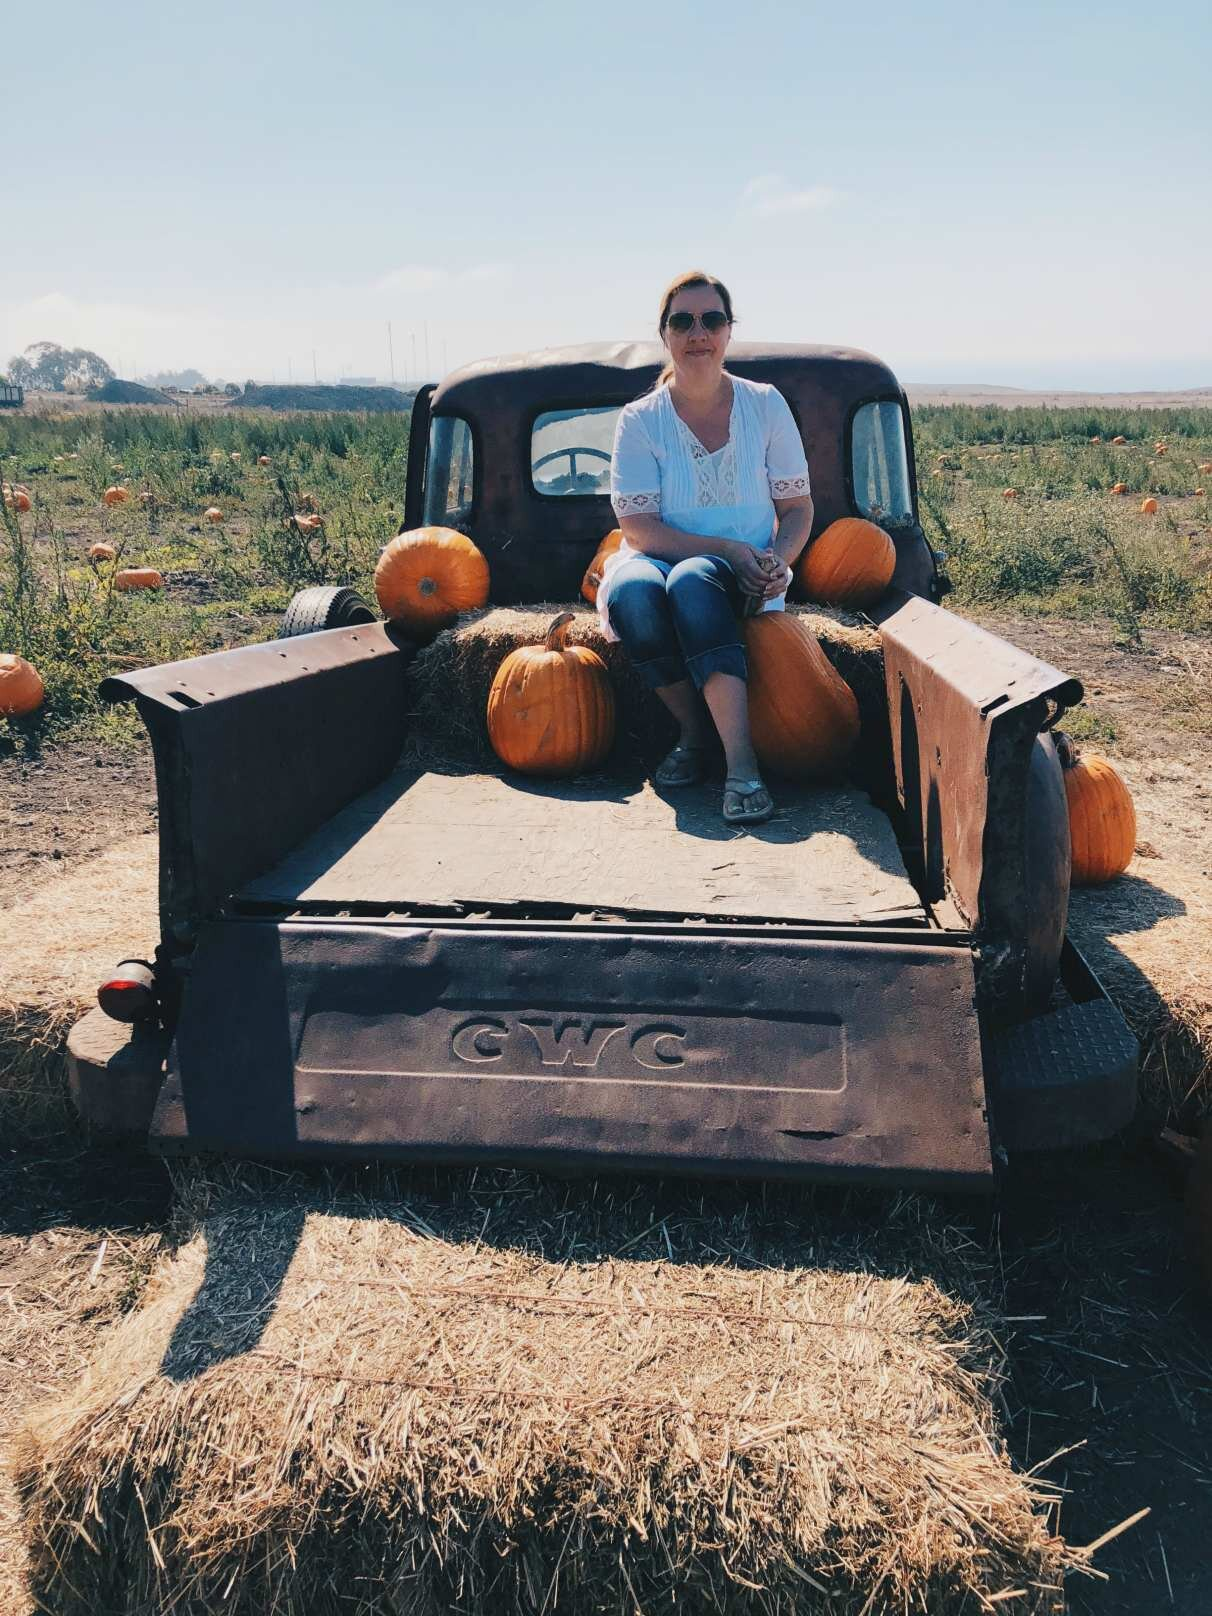 One of the best pumpkin patches in the Bay Area for sure; Bob's Pumpkin Farm